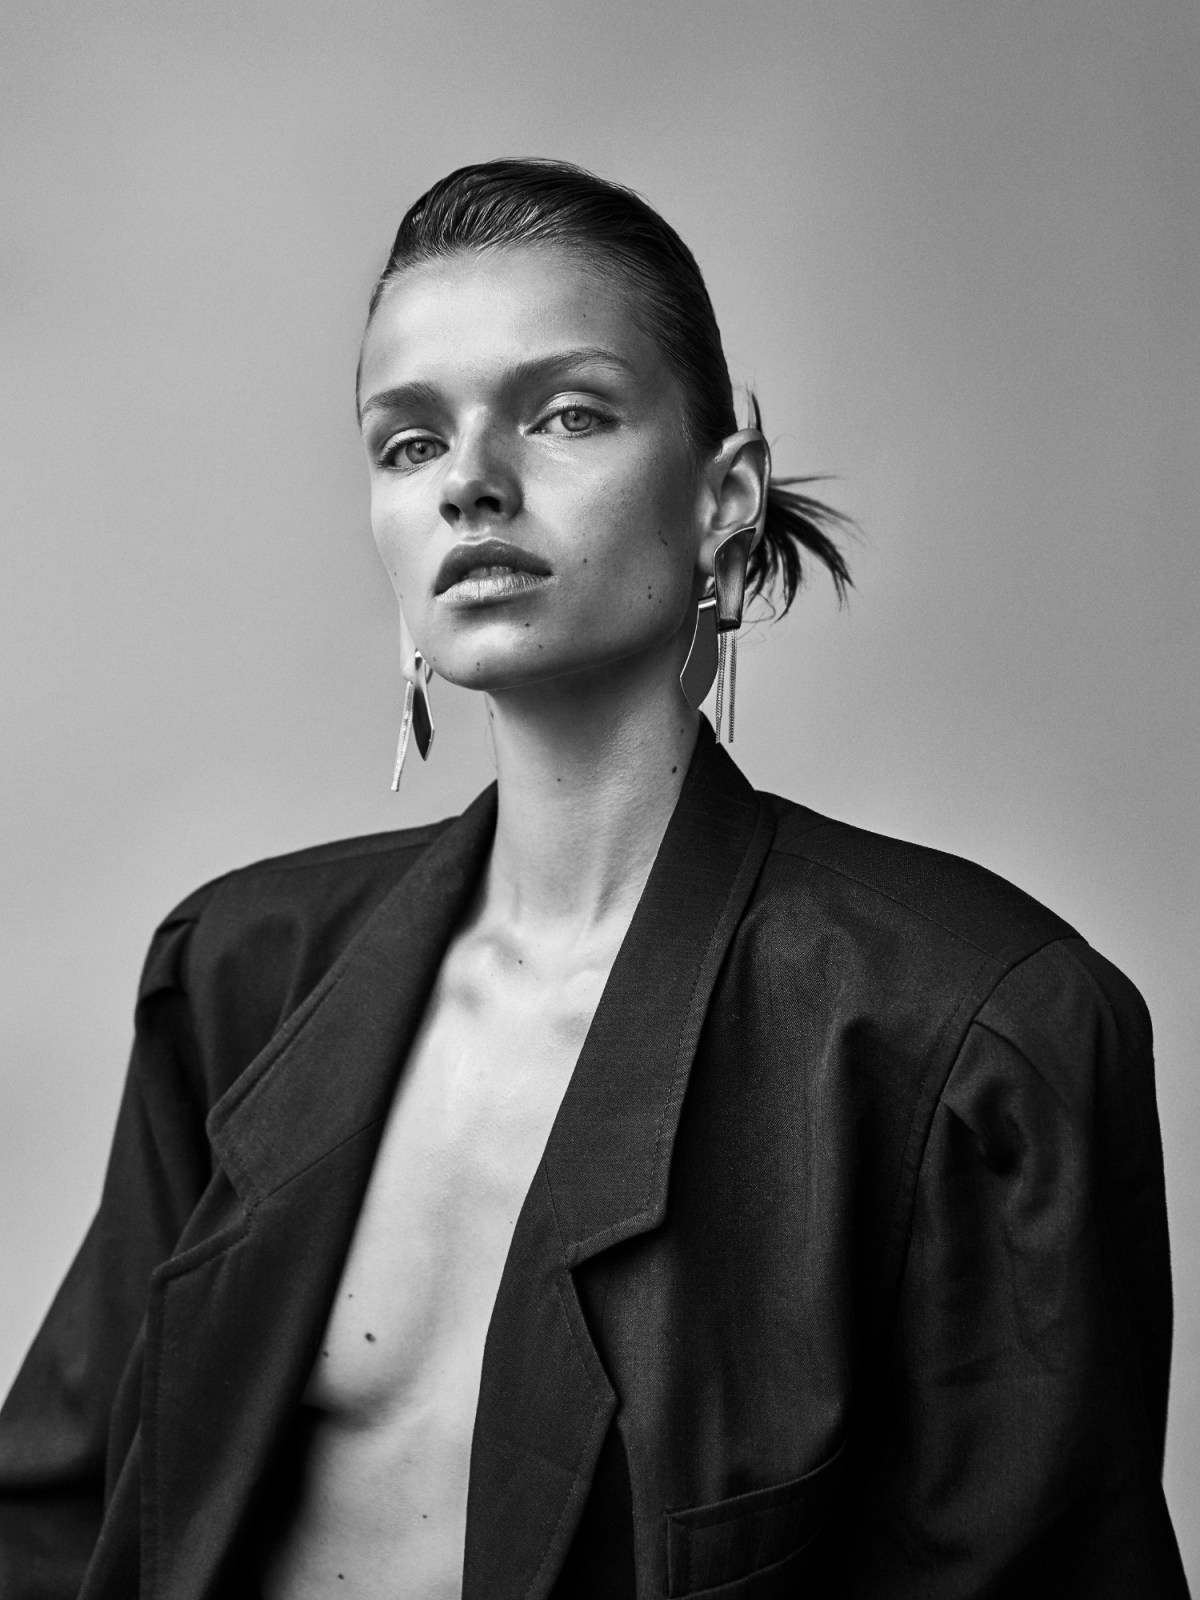 Marie-Louise Wedel by Lina Tesch